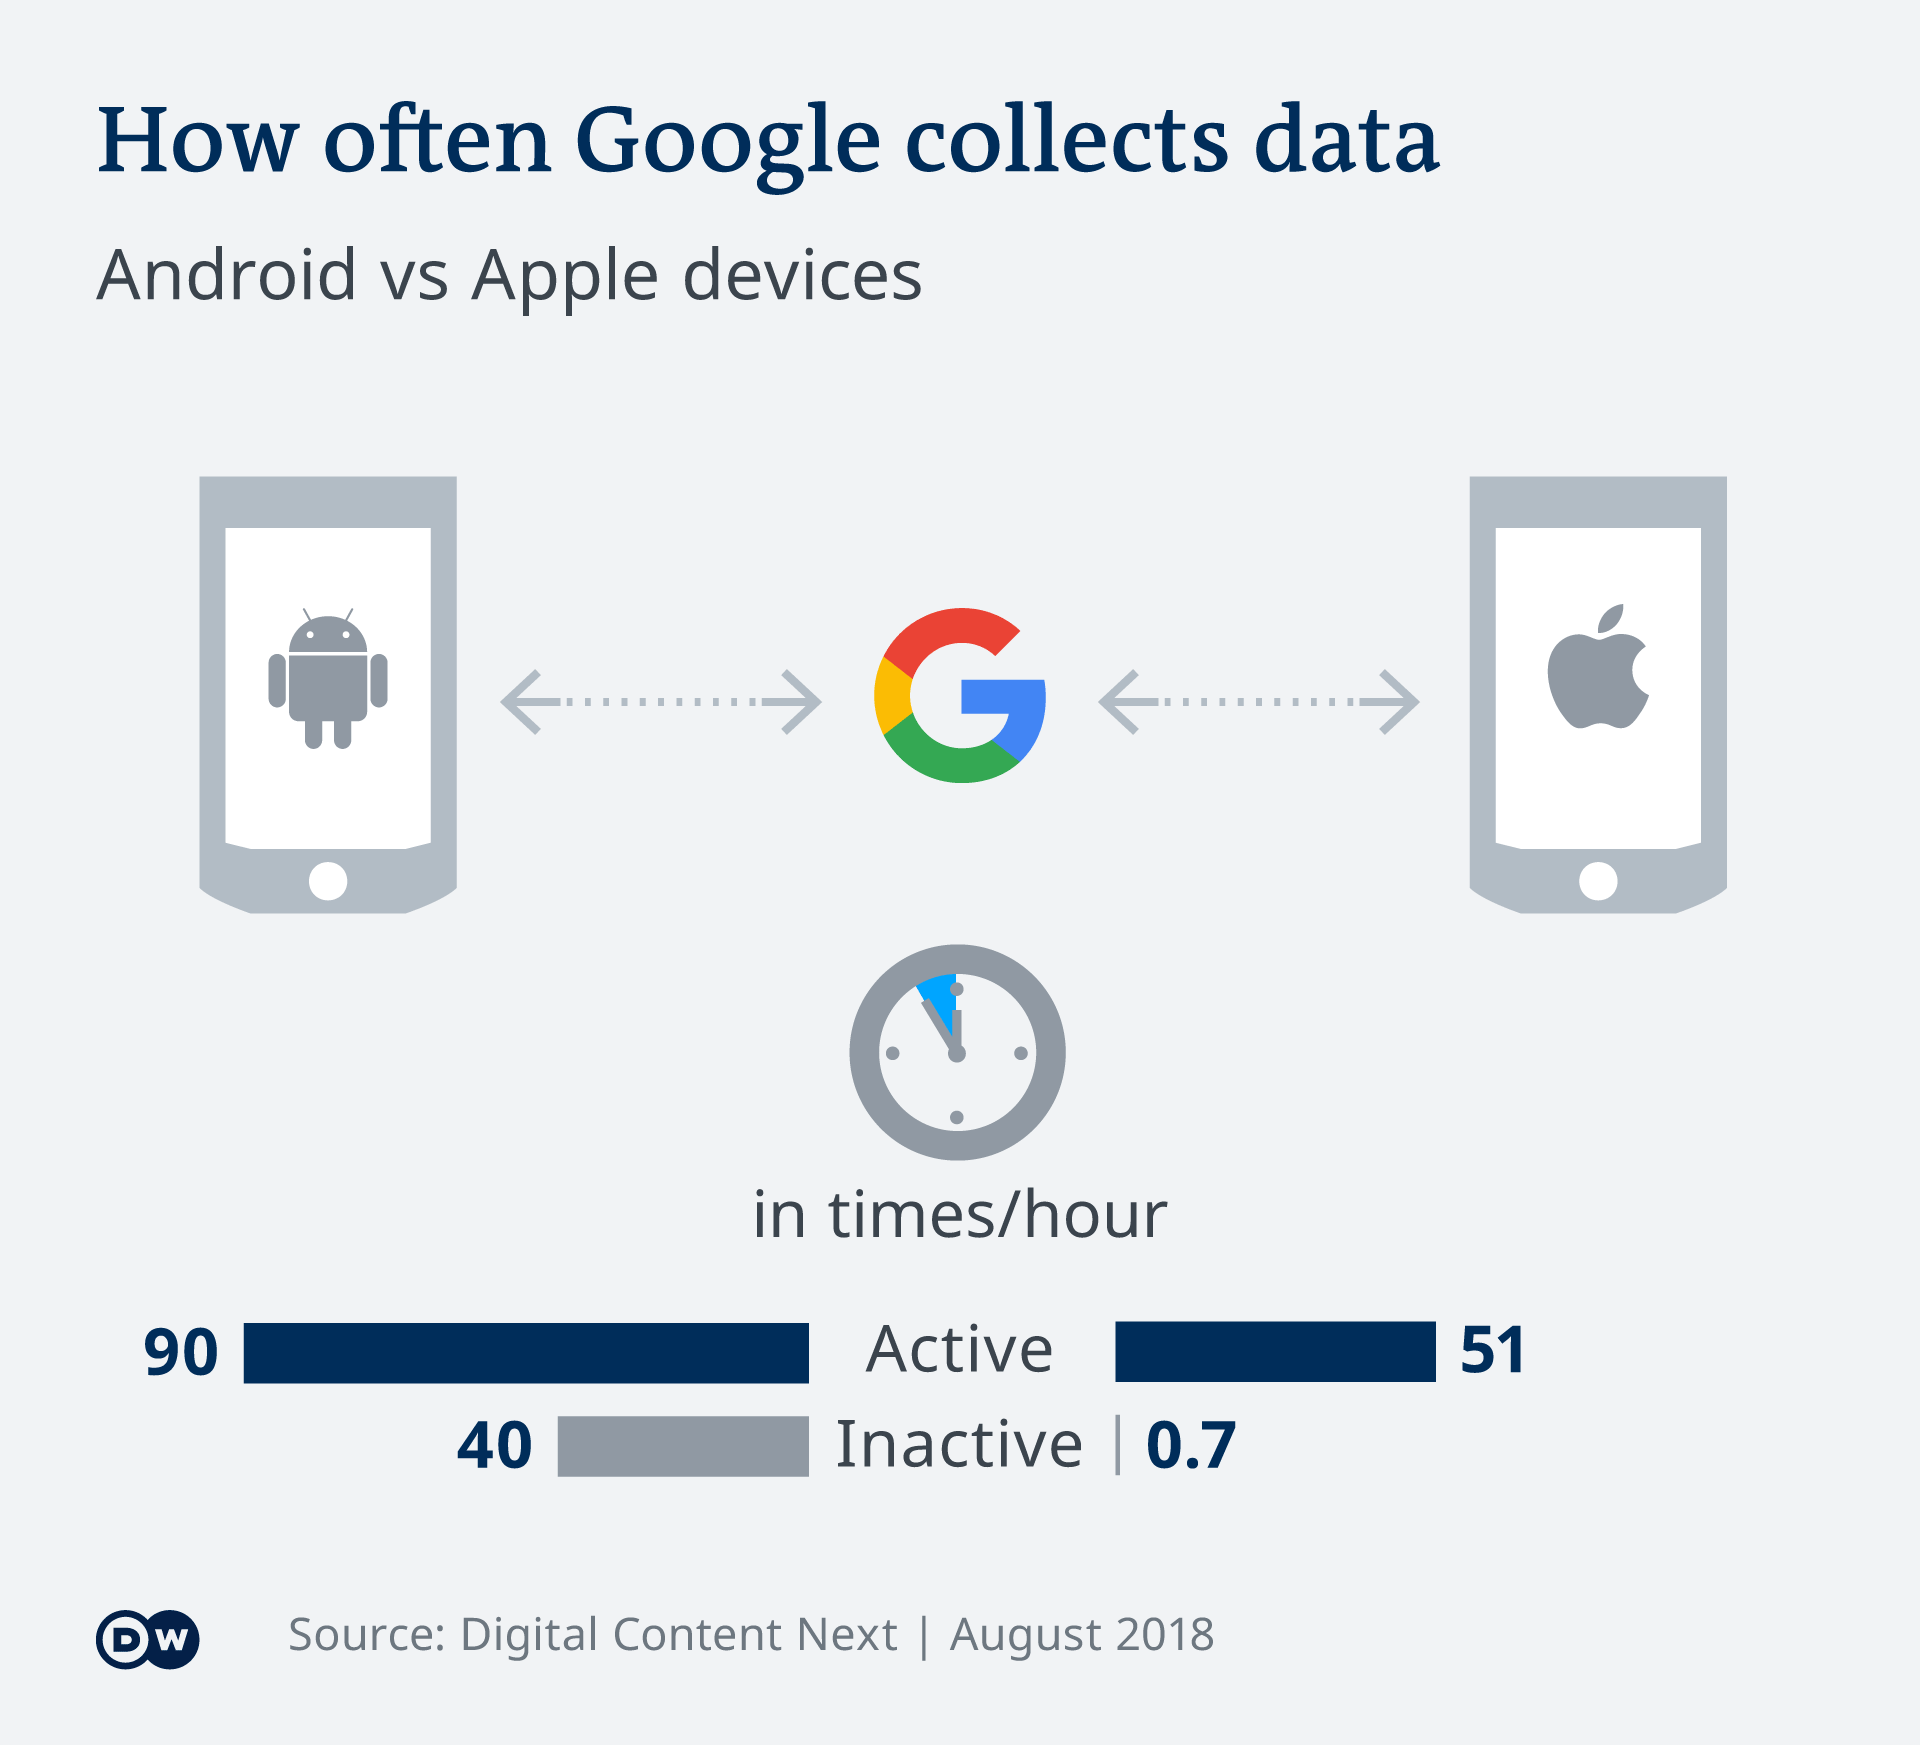 Graphic showing how many times Google collects data per hour from smart devices